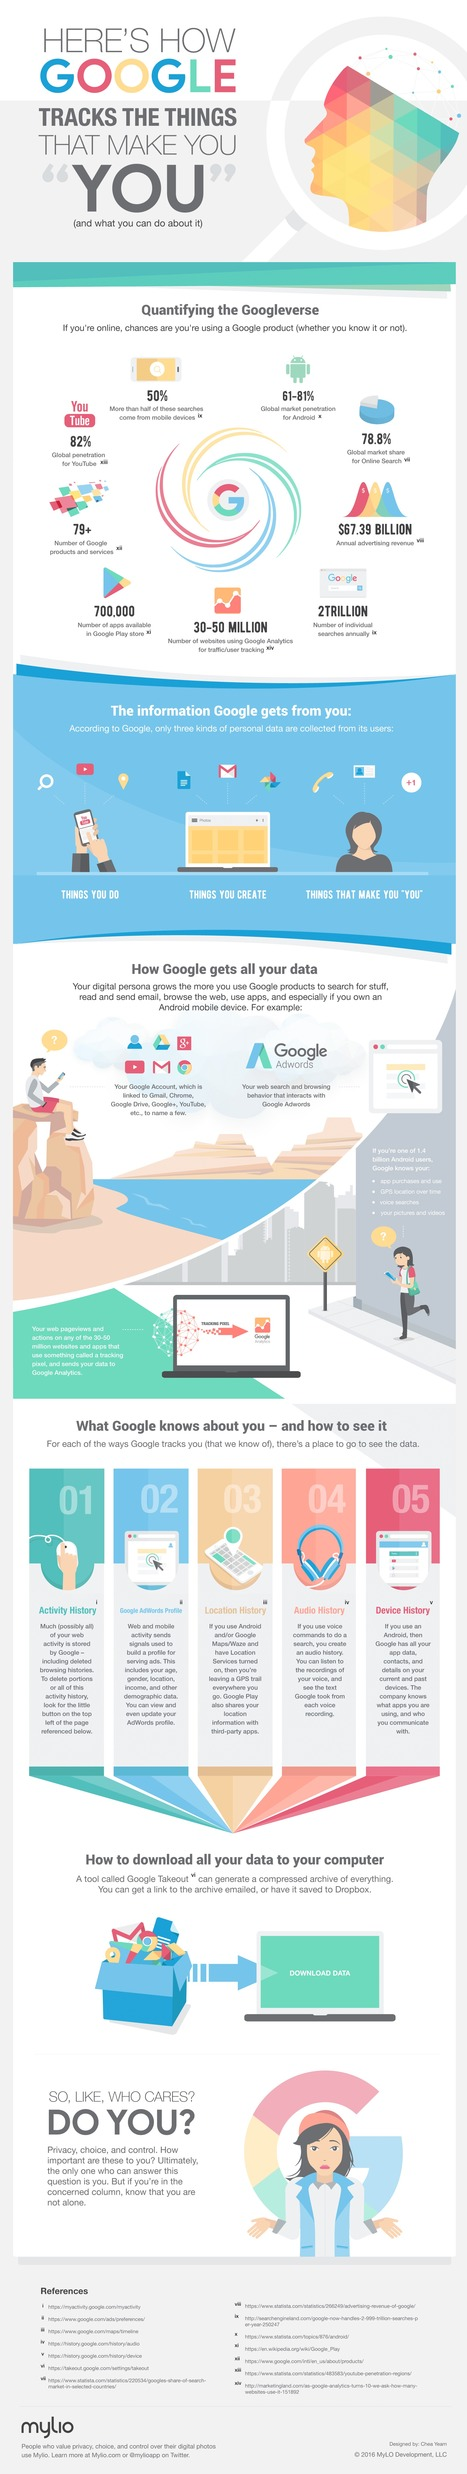 INFOGRAPHIC: Here's How Google Tracks You - and What You Can Do About It | TEFL & Ed Tech | Scoop.it